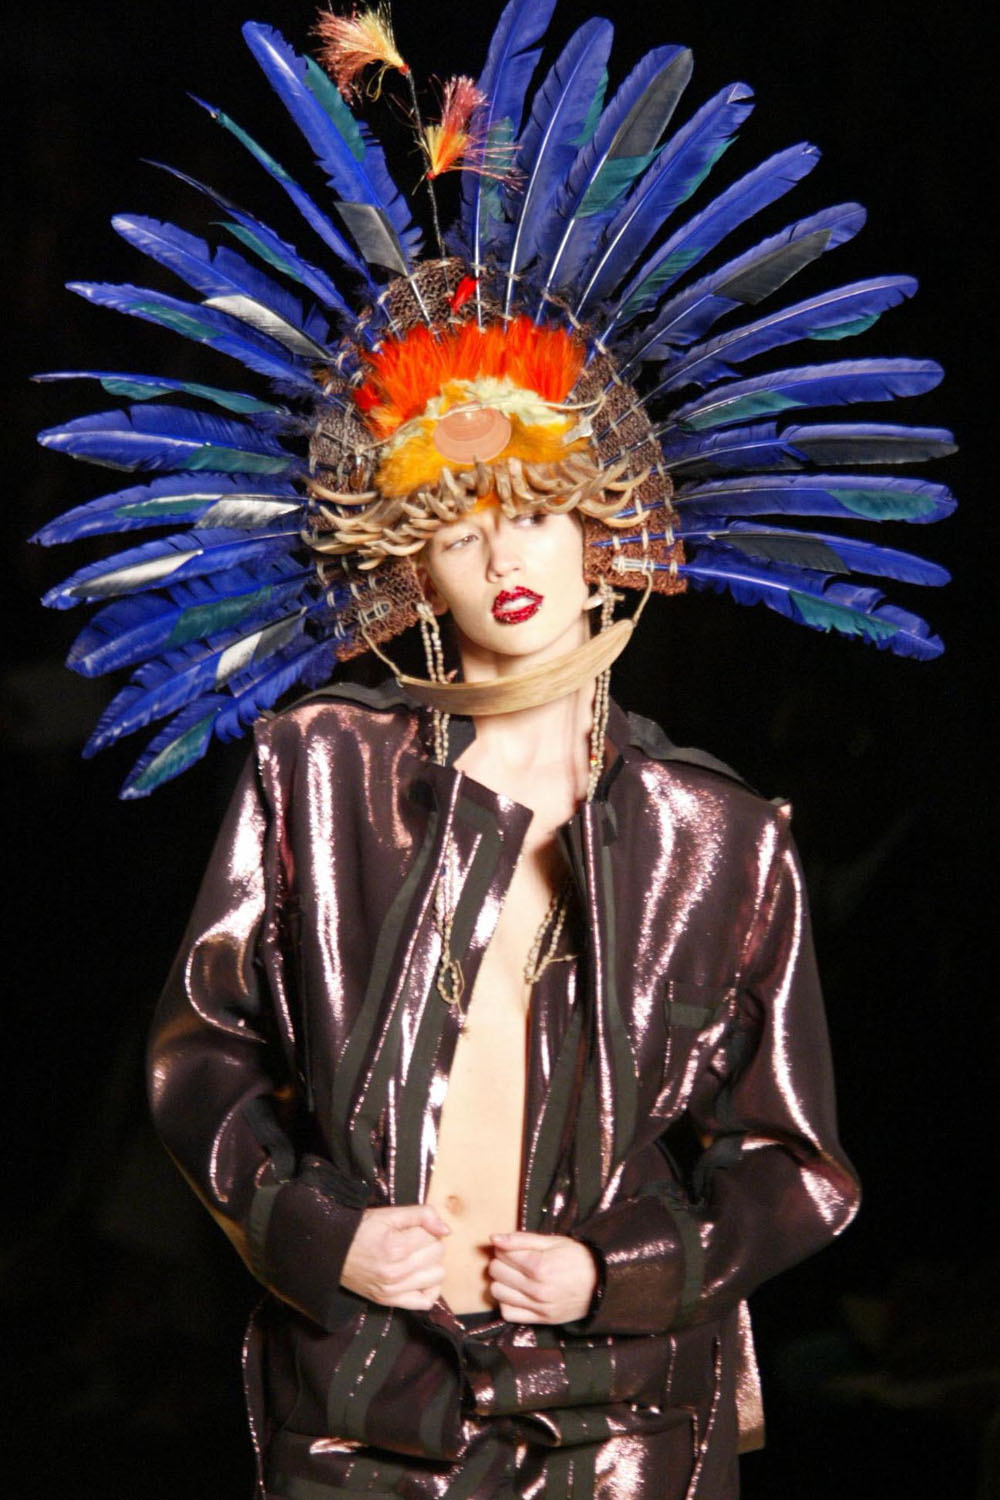 Givenchy sex couture - 2 4